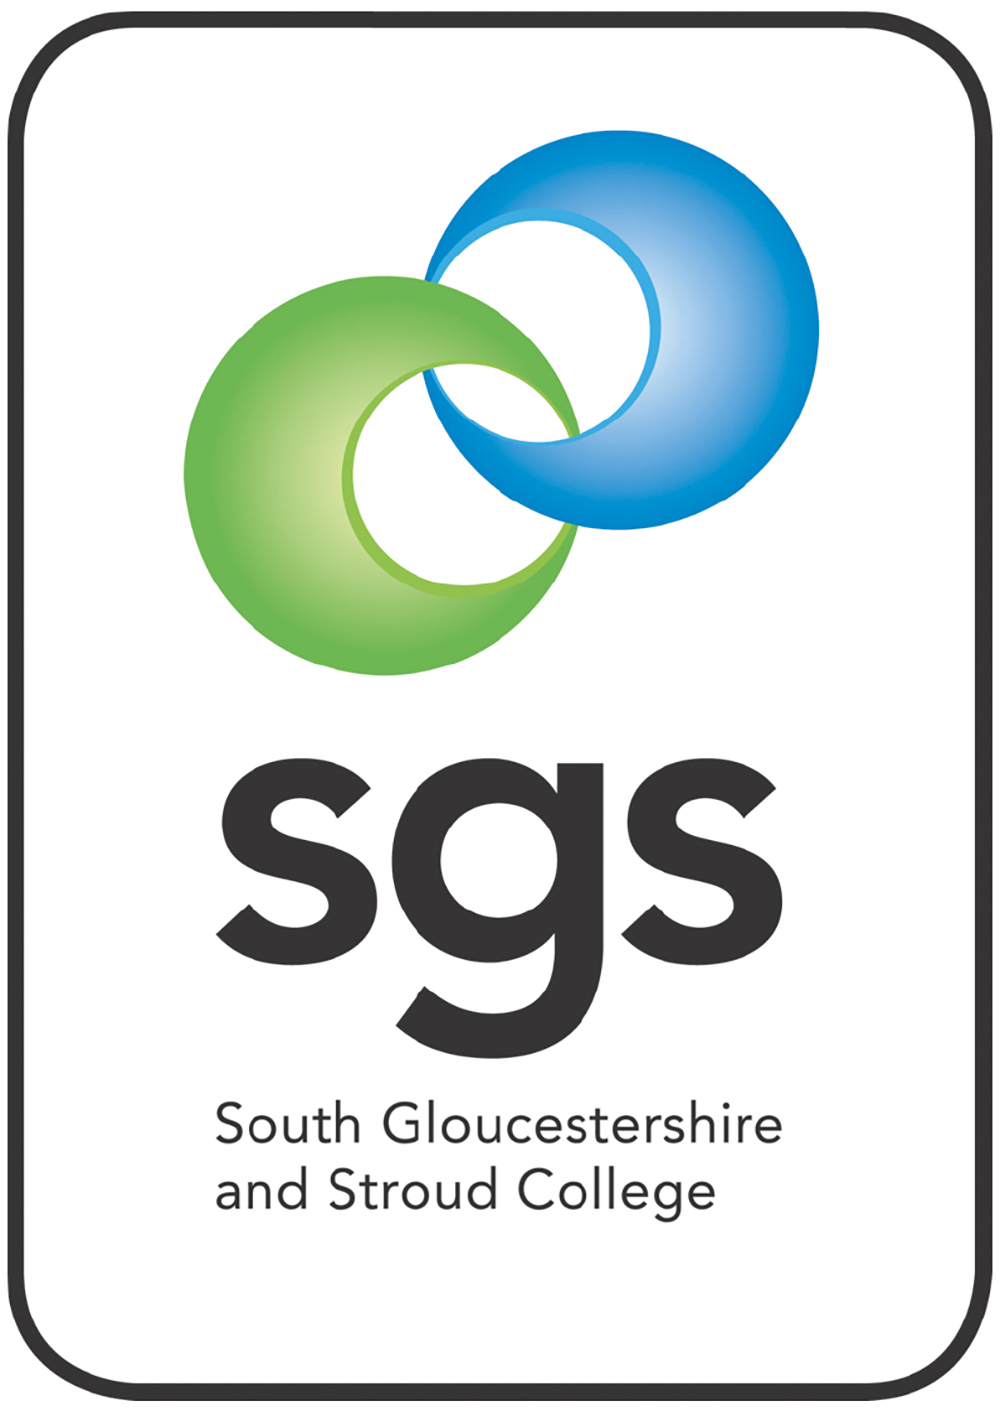 South Gloucestershire and Stroud College